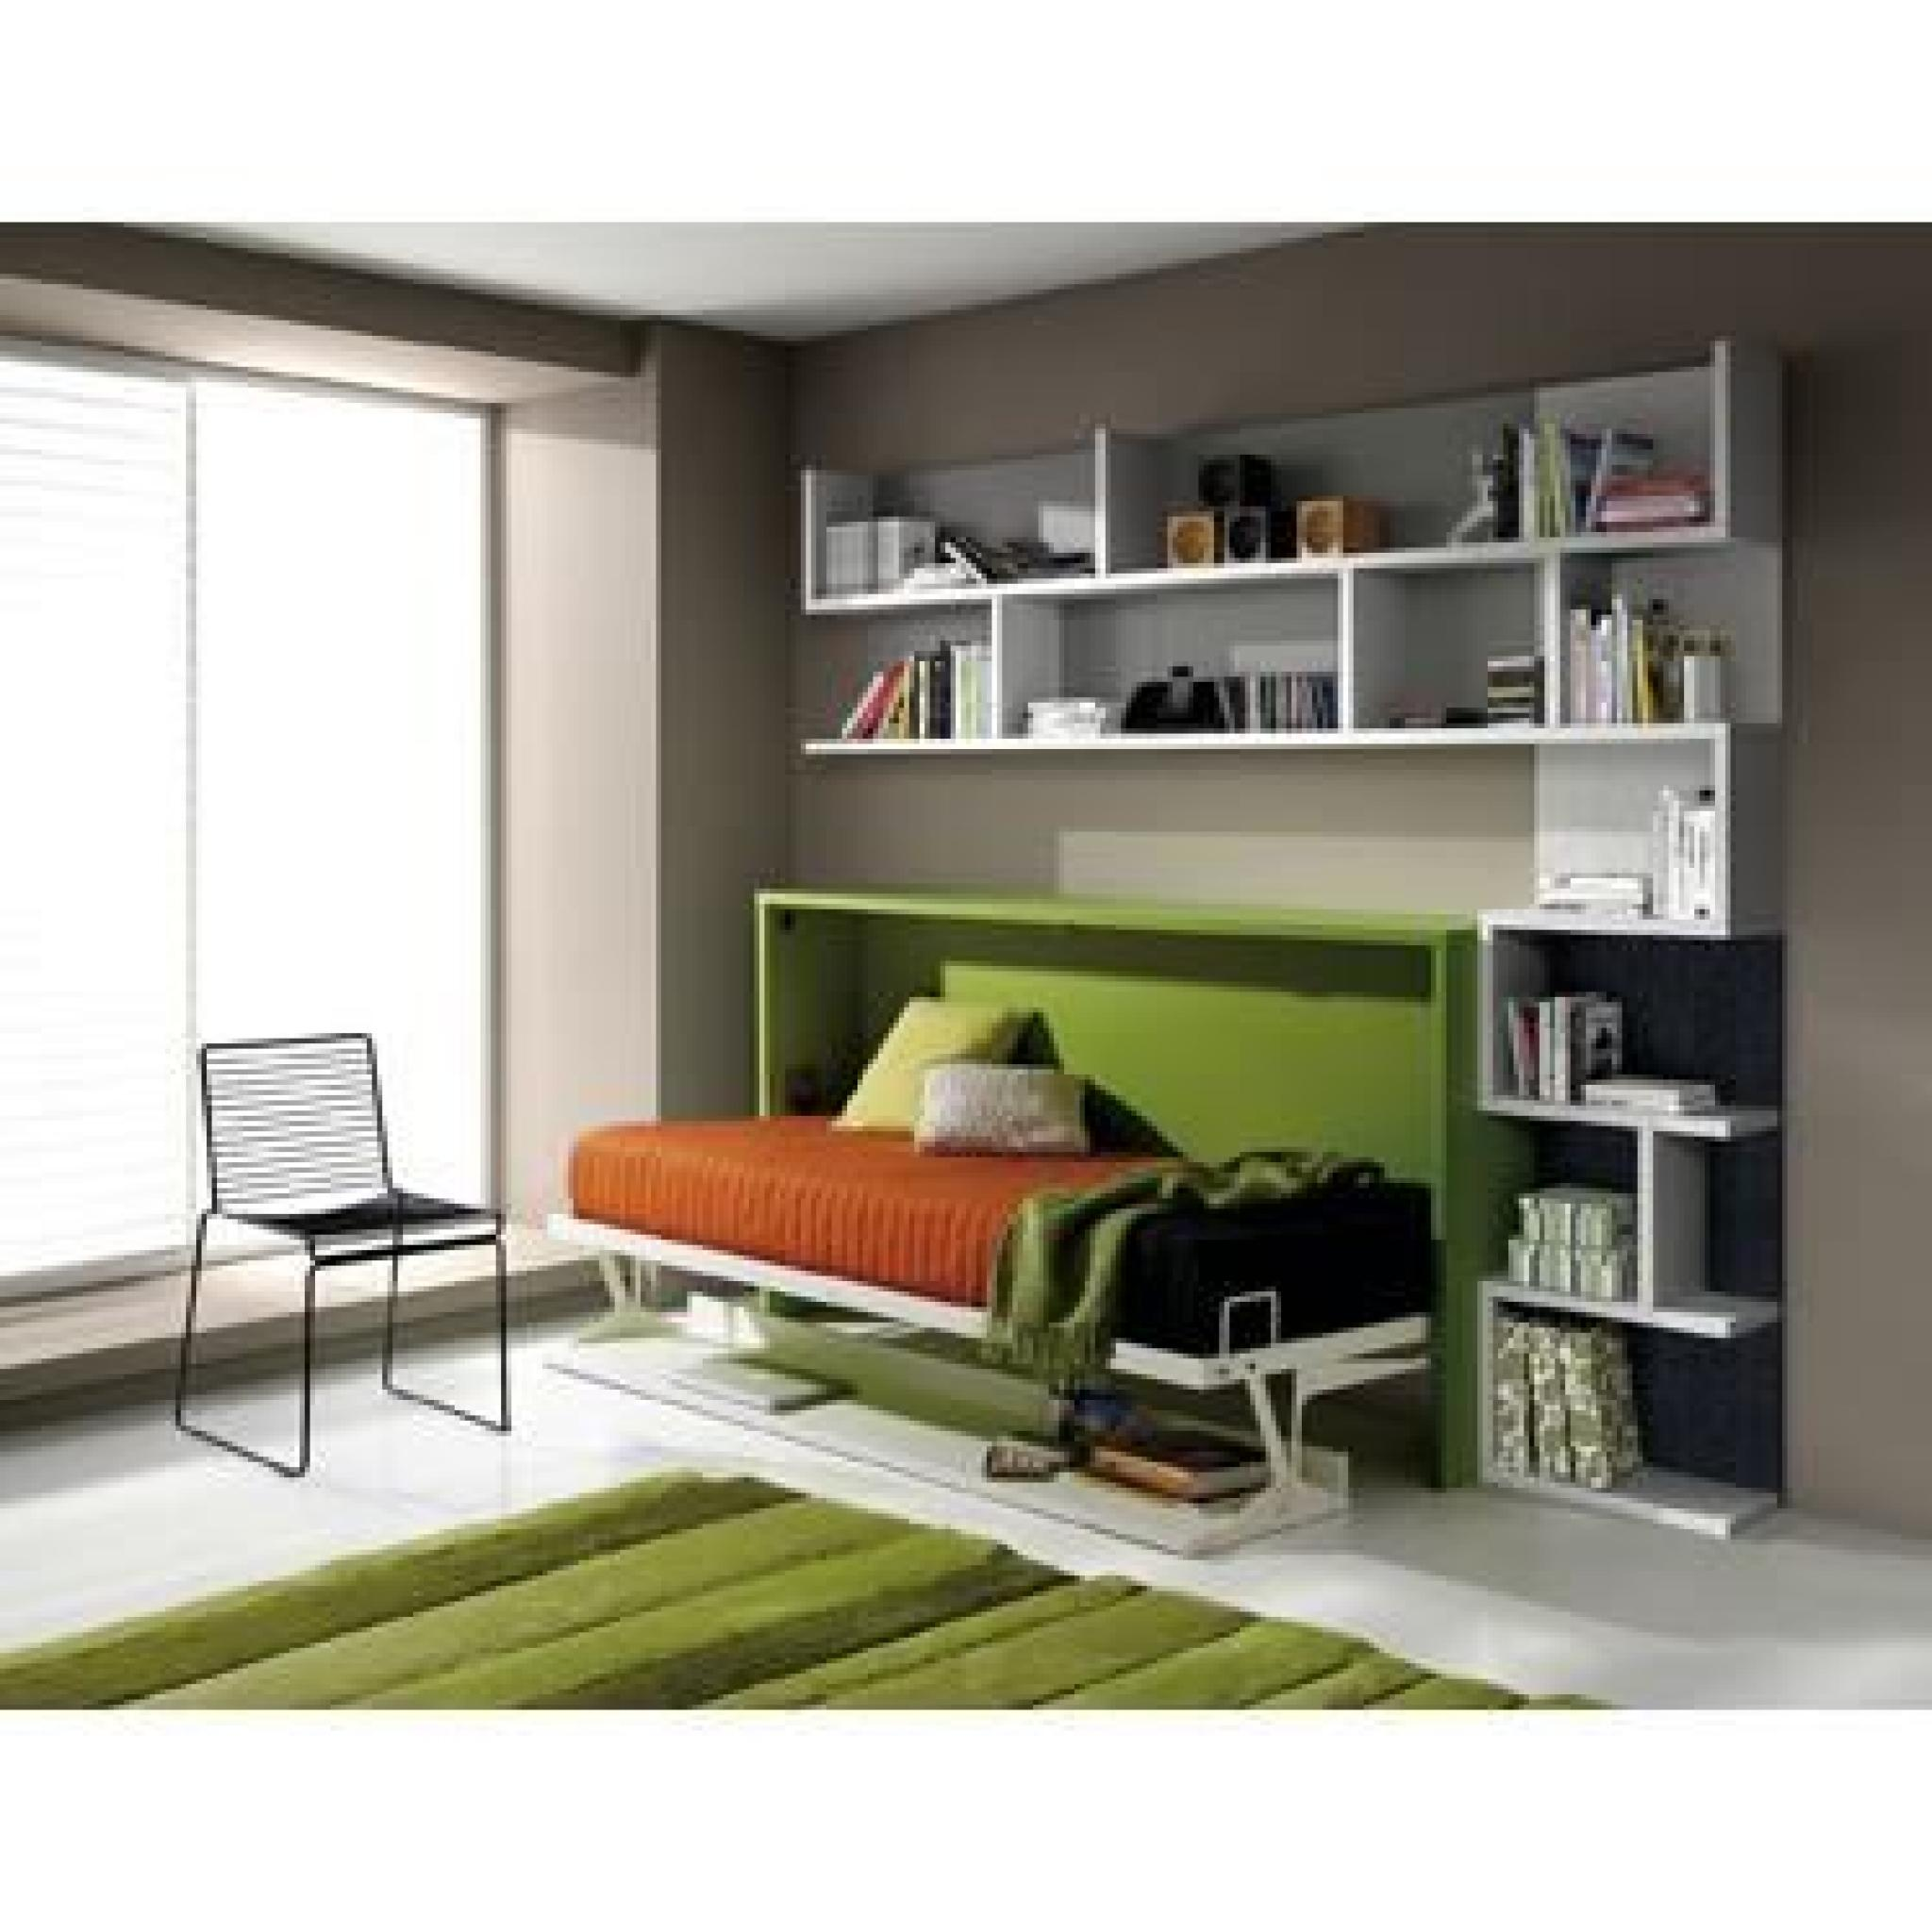 lit encastrable pas cher perfect attrayant isoler un garage pas cher lit escamotable pas cher. Black Bedroom Furniture Sets. Home Design Ideas